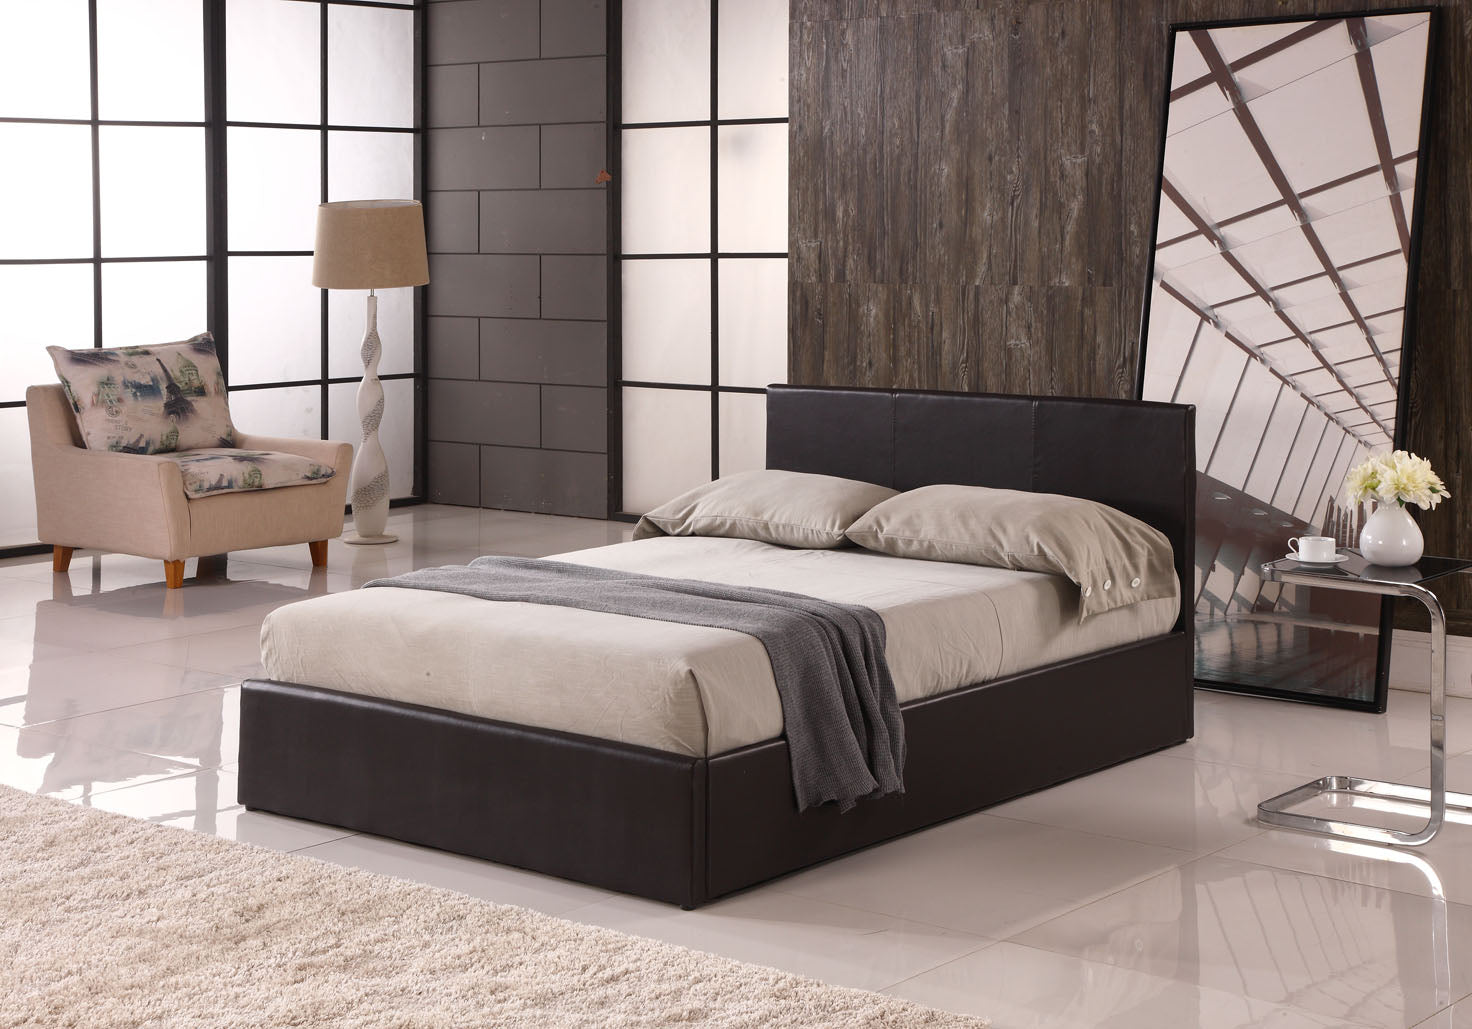 OTTOMAN | Faux Leather Storage Bed | Colours: Black, Brown and White | Sizes: Single (3ft), Small Double (4ft), Standard Double (4ft6), King (5ft) and Super-King (6ft) |